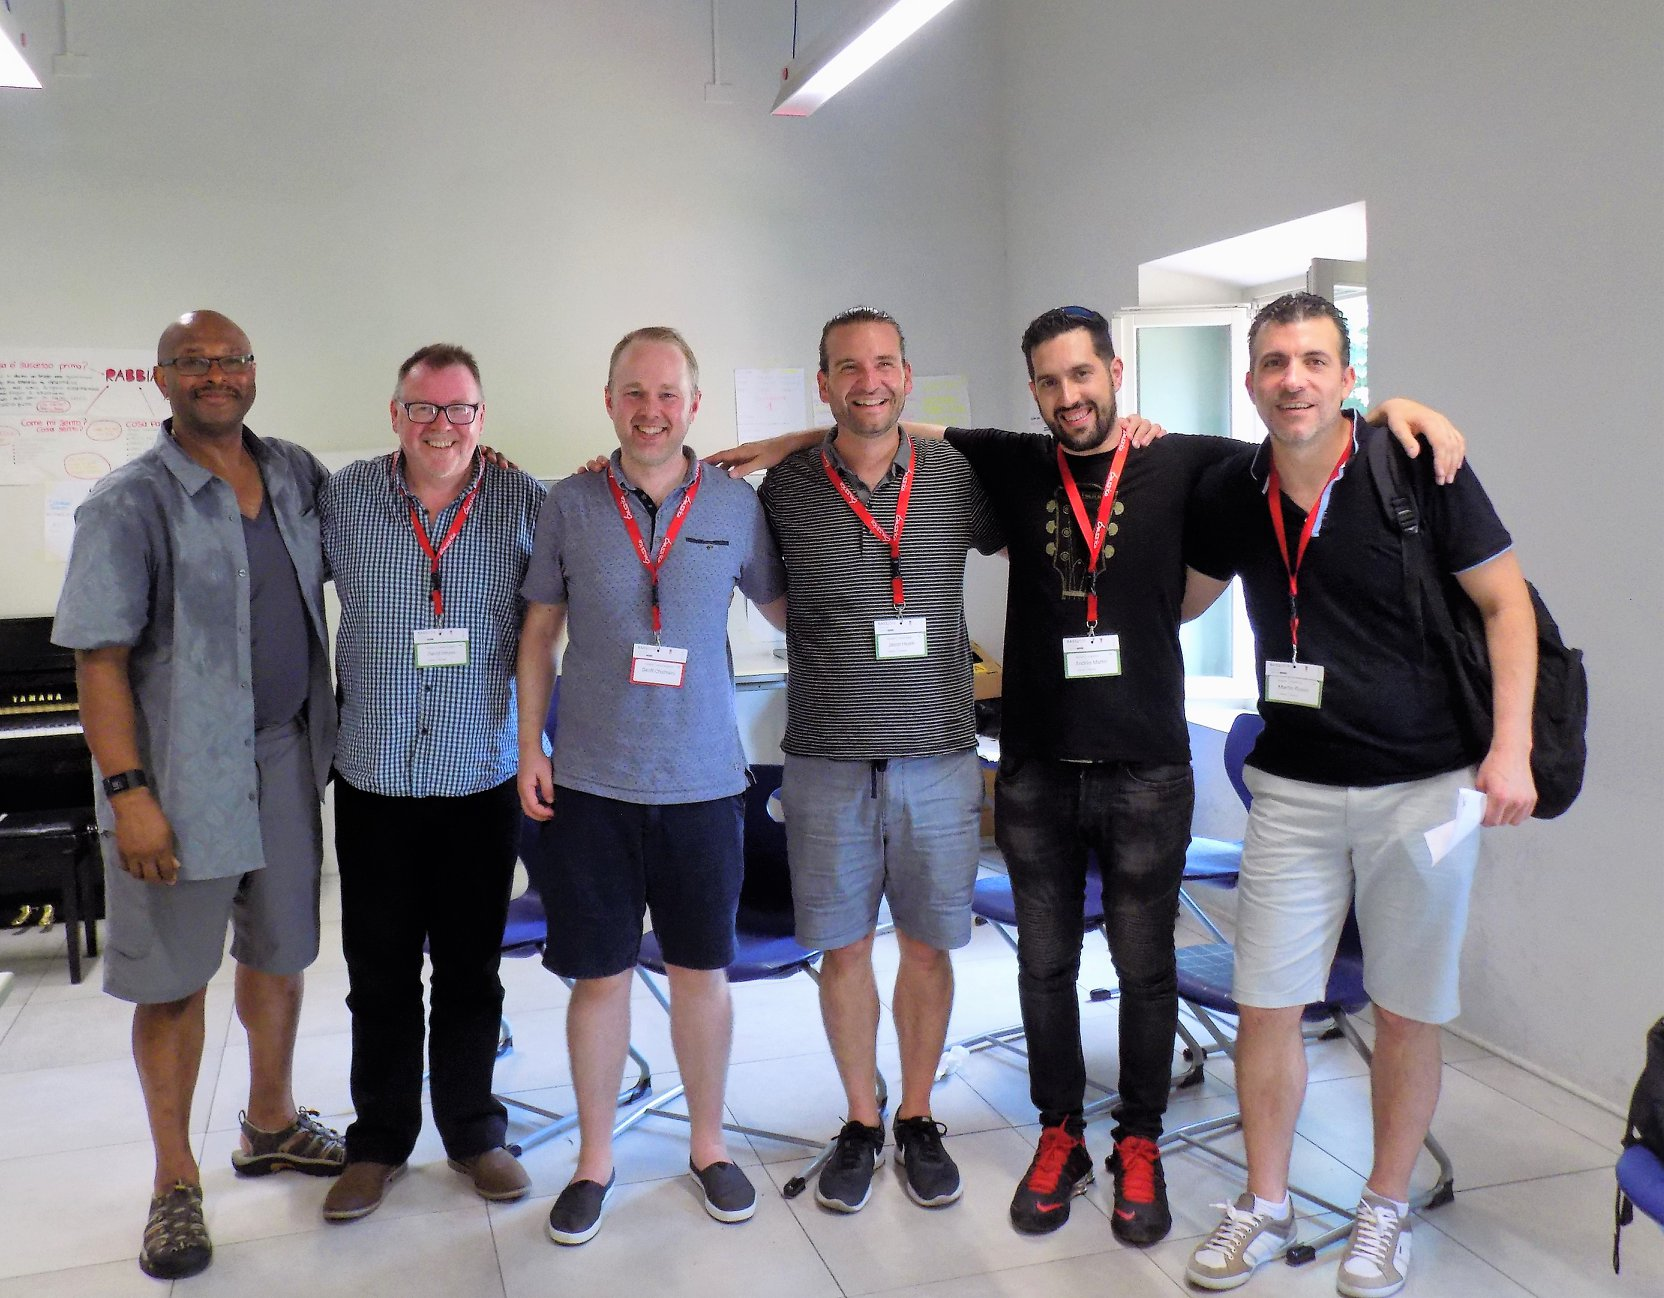 Douglas Mapp, David Heyes, Geoff Chalmers, Jason Heath, Andres Martin and Martin Rosso in Lucca at the BASS EUROPE 2018 convention.